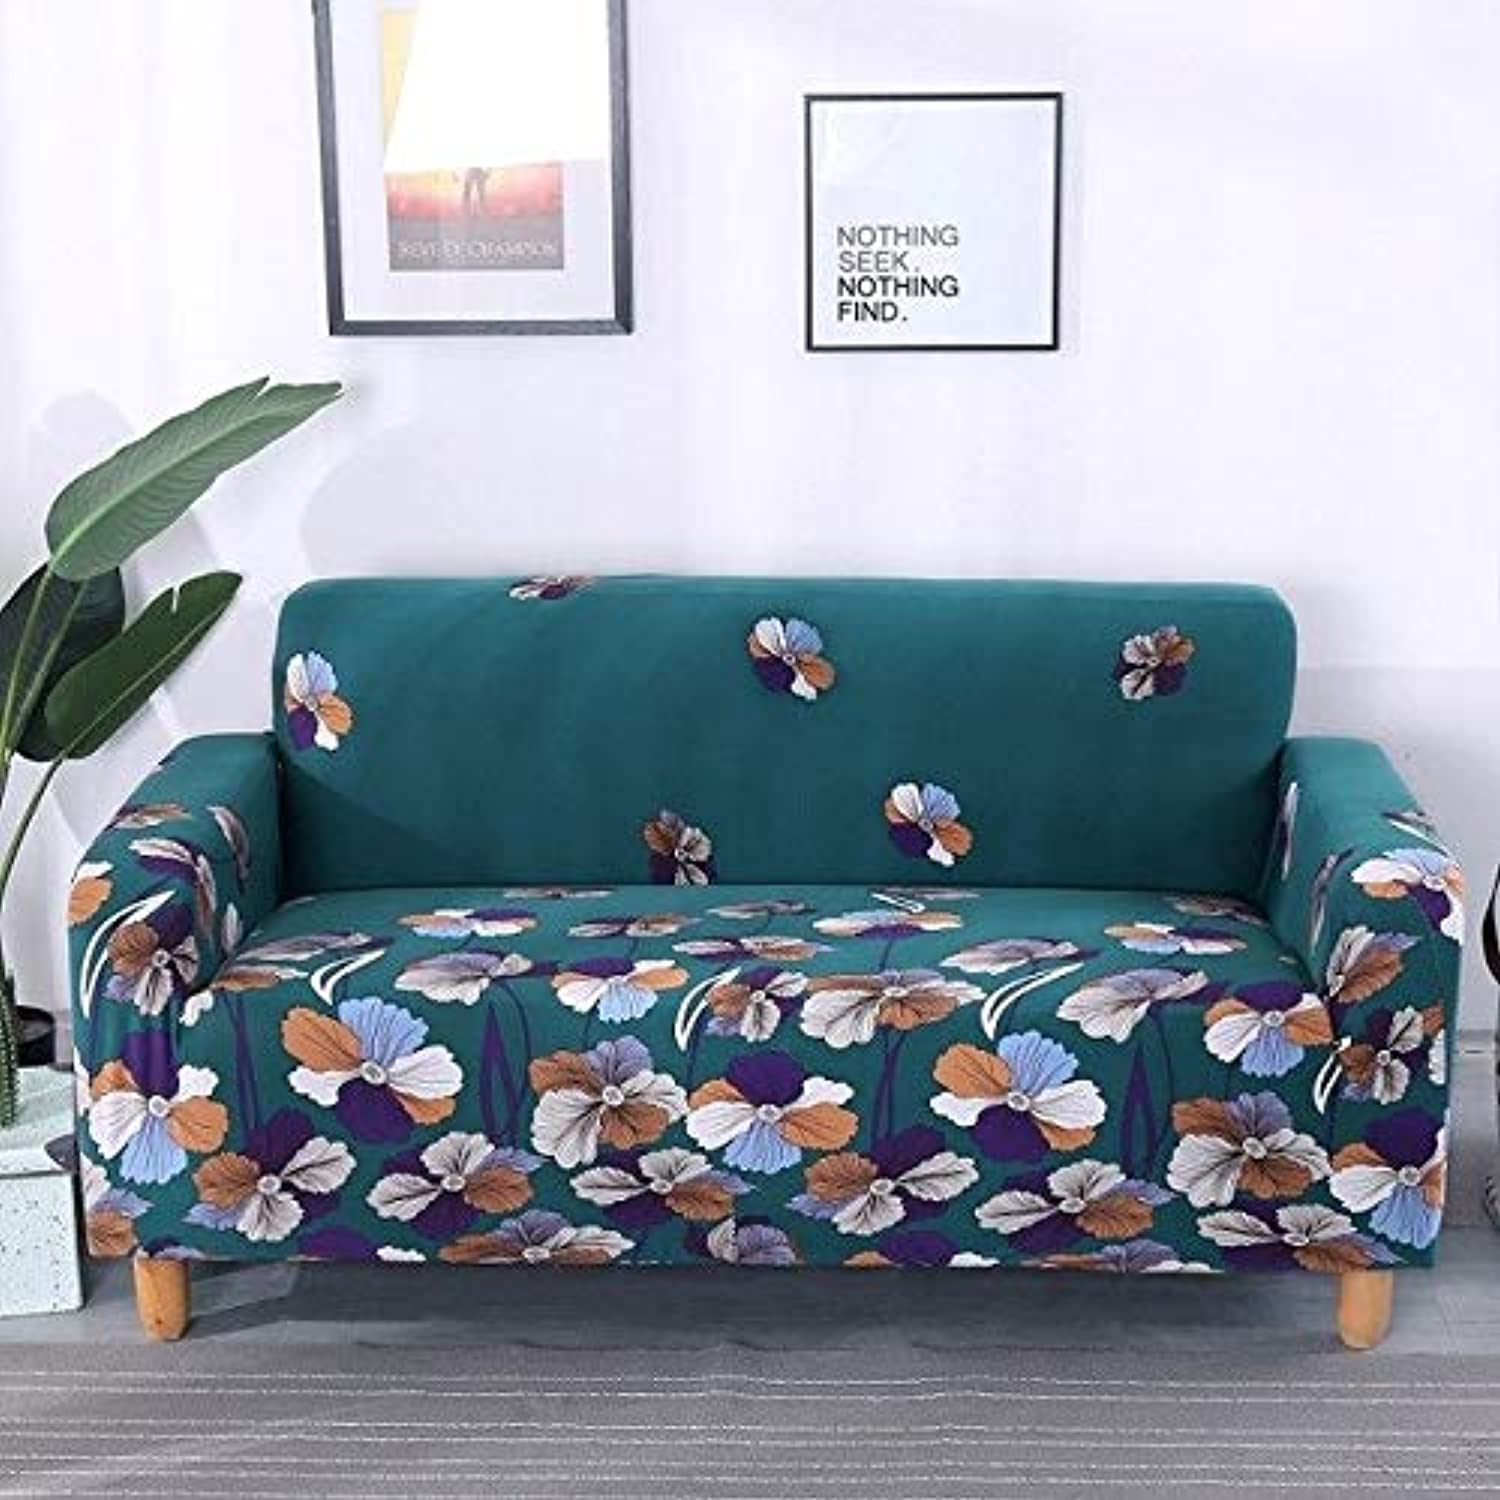 Sofa Cover Tight Wrap All-Inclusive Stretch Modern Sofa Covers for Living Room Washable Home Hotel Couch Cover copridivano   color 4, 2seater 145-185cm